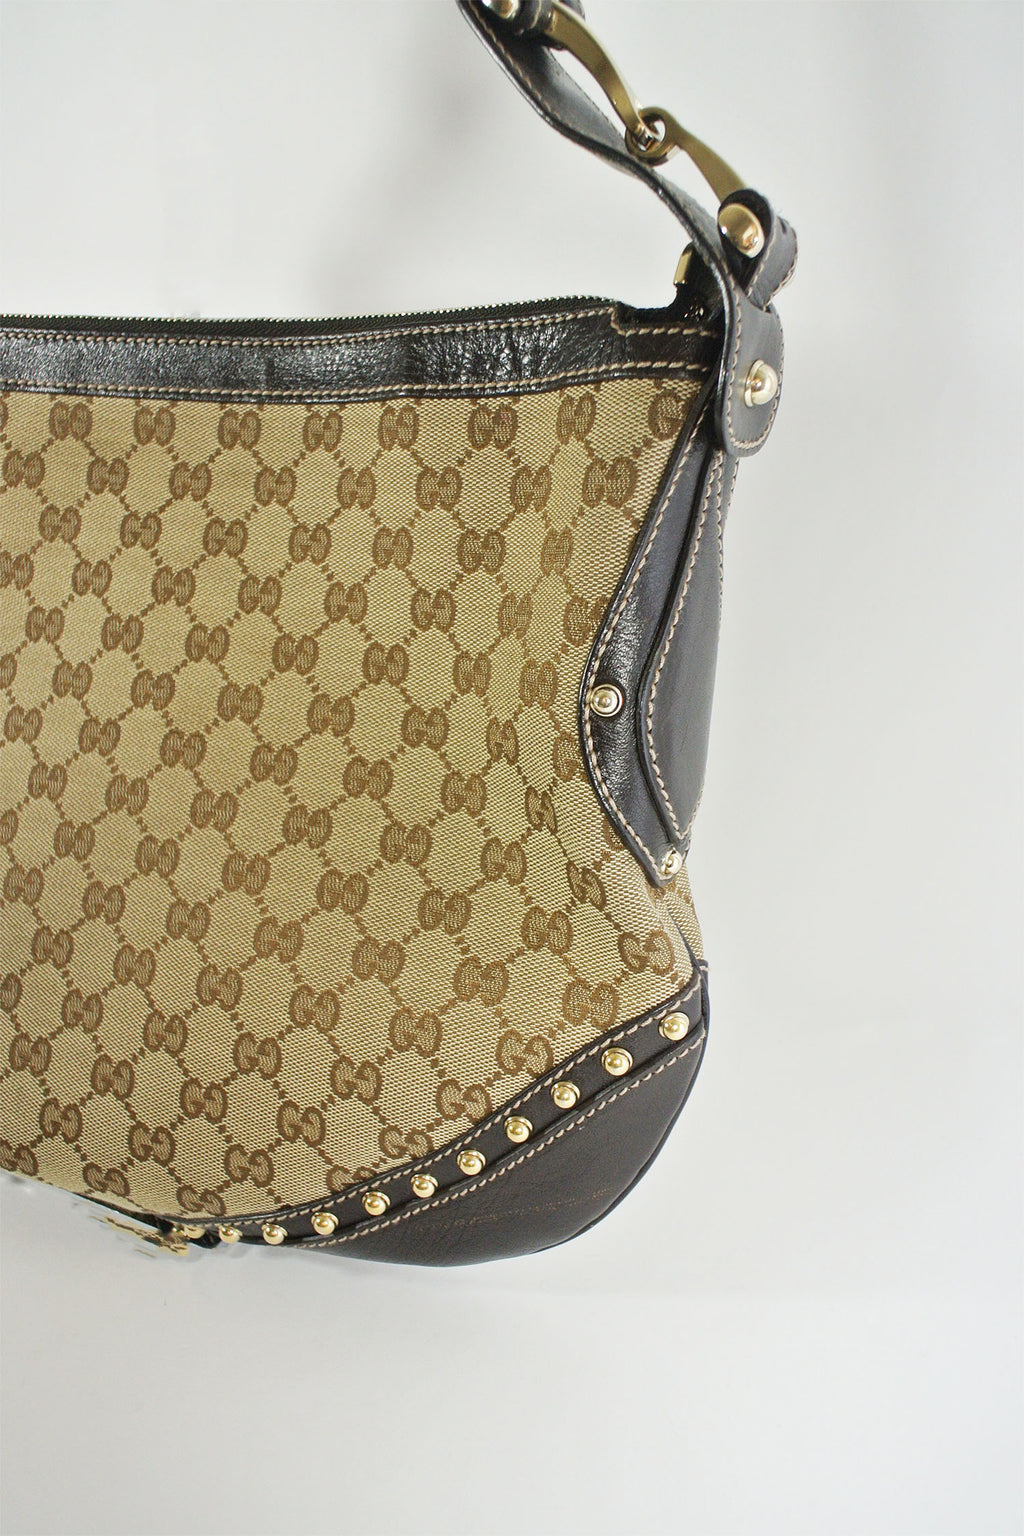 Gucci GG Canvas Pelham Hobo